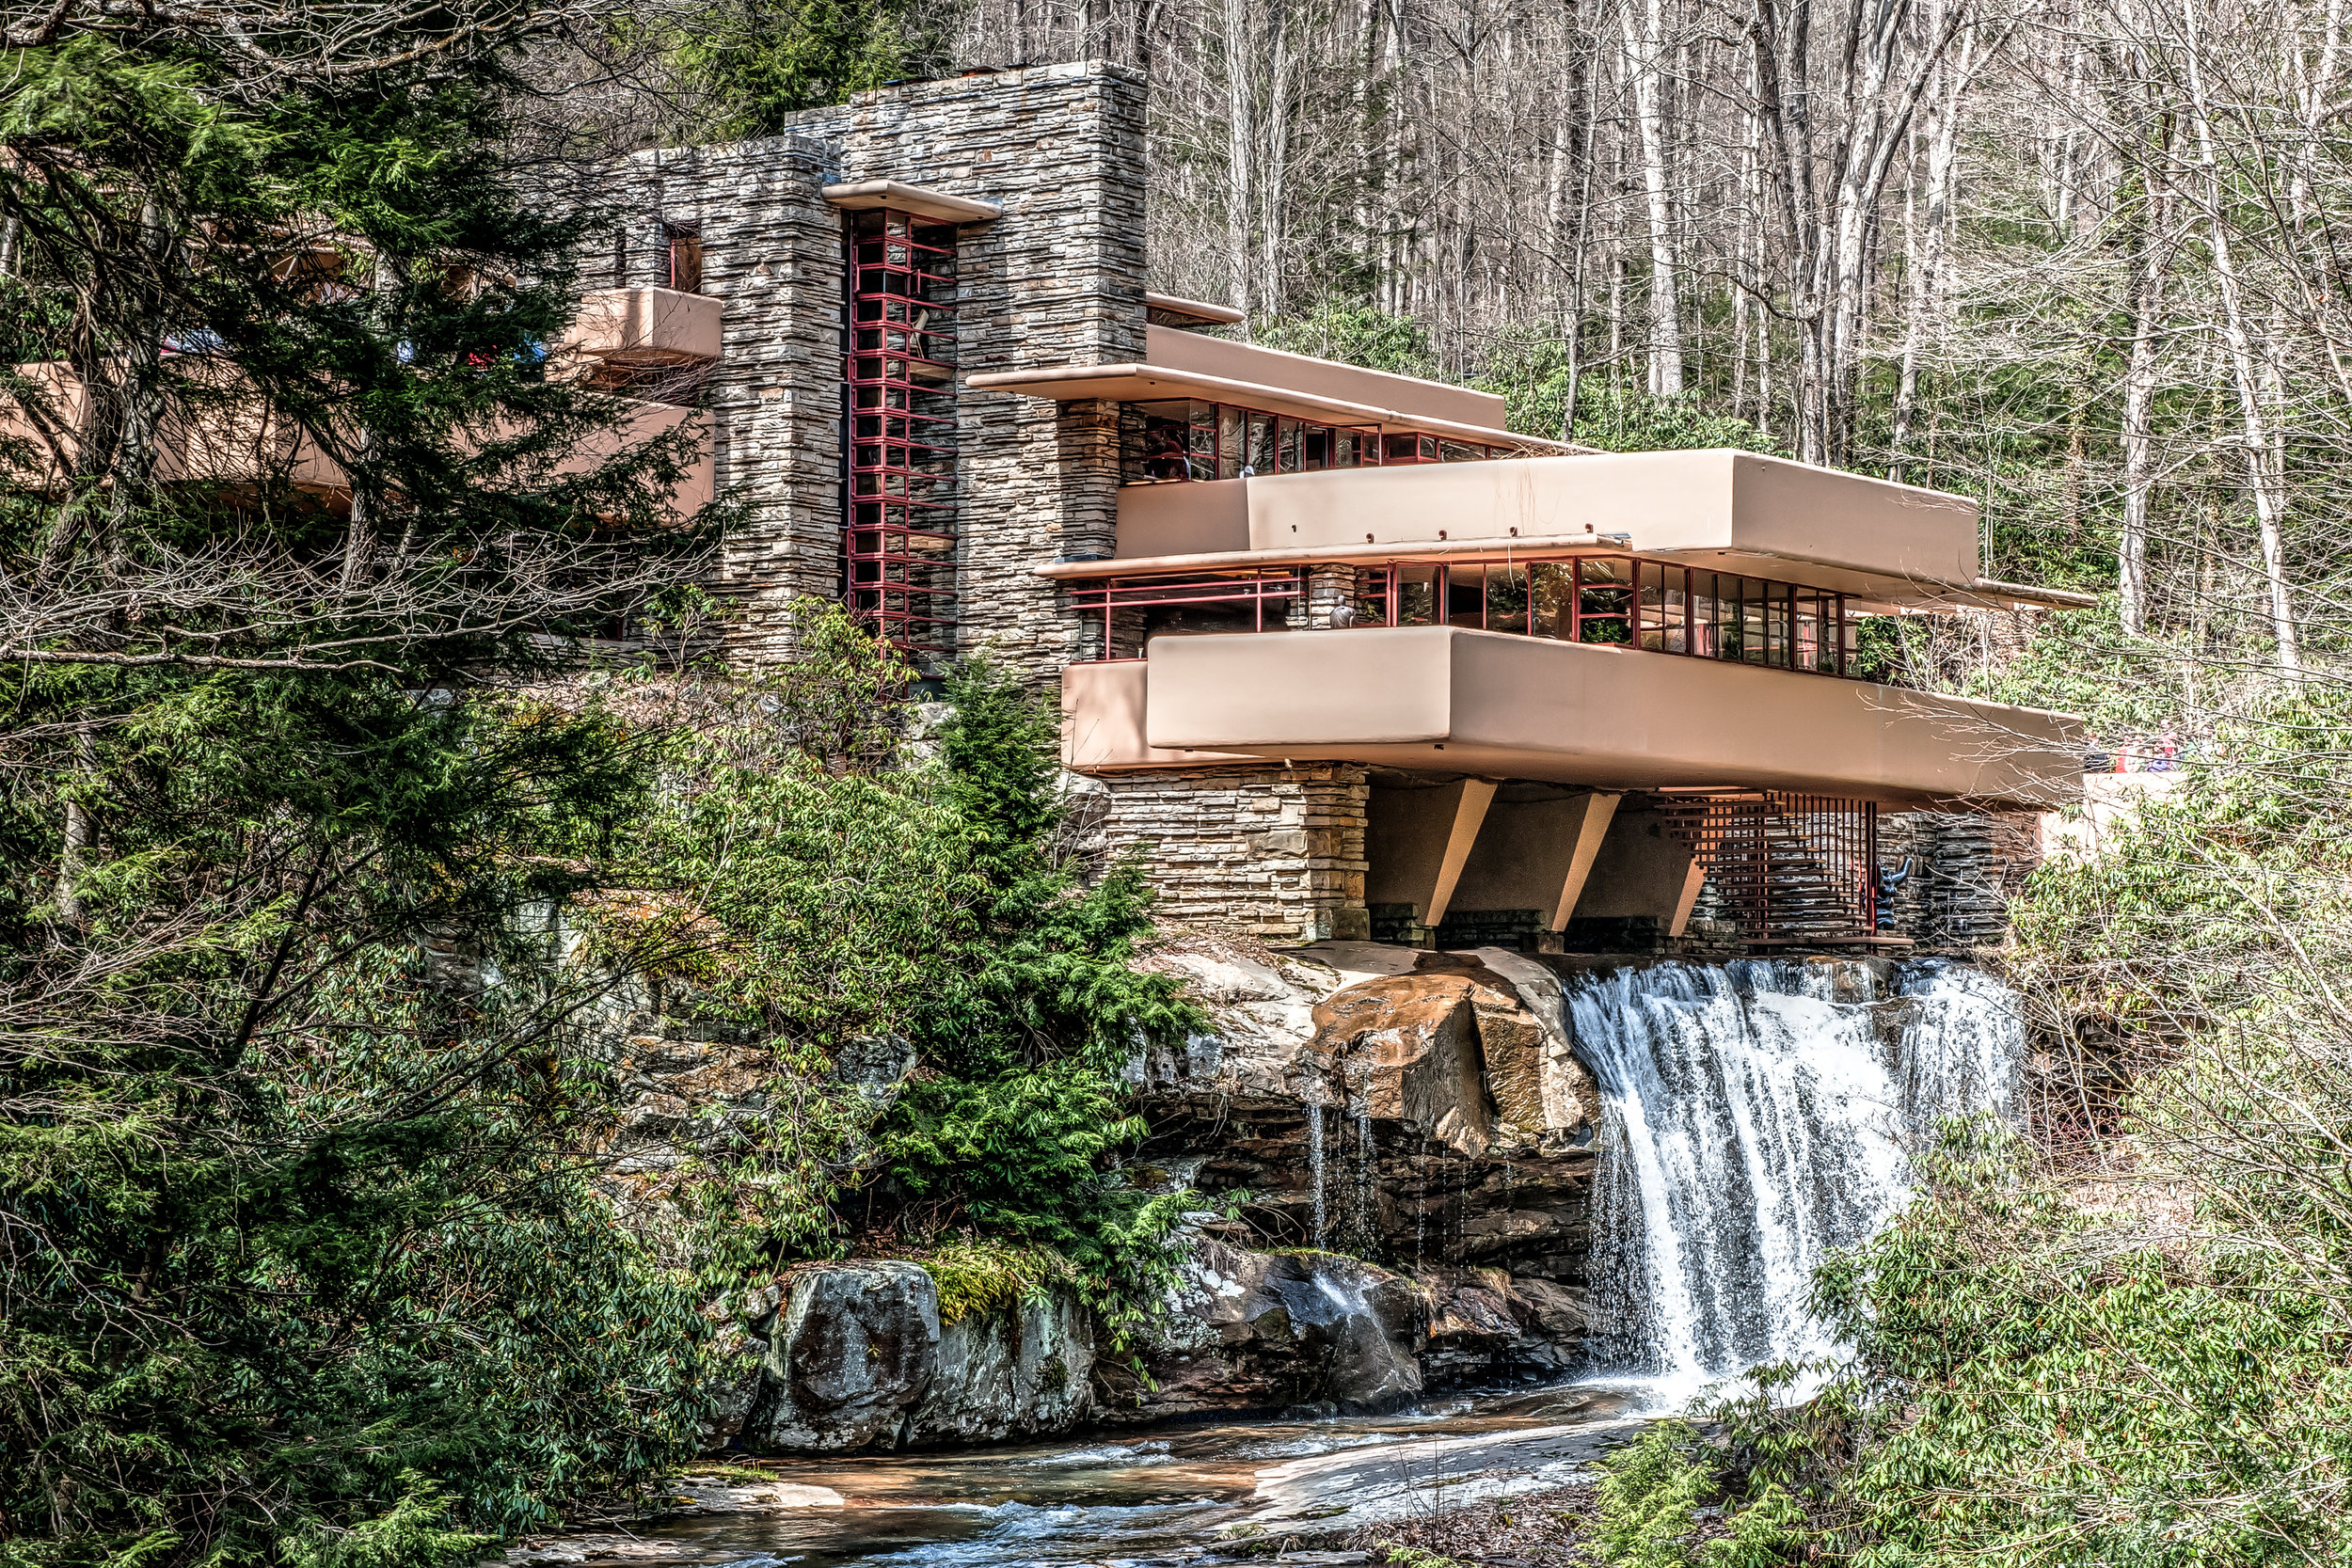 Falling Water, Mill Run, Pennsylvania